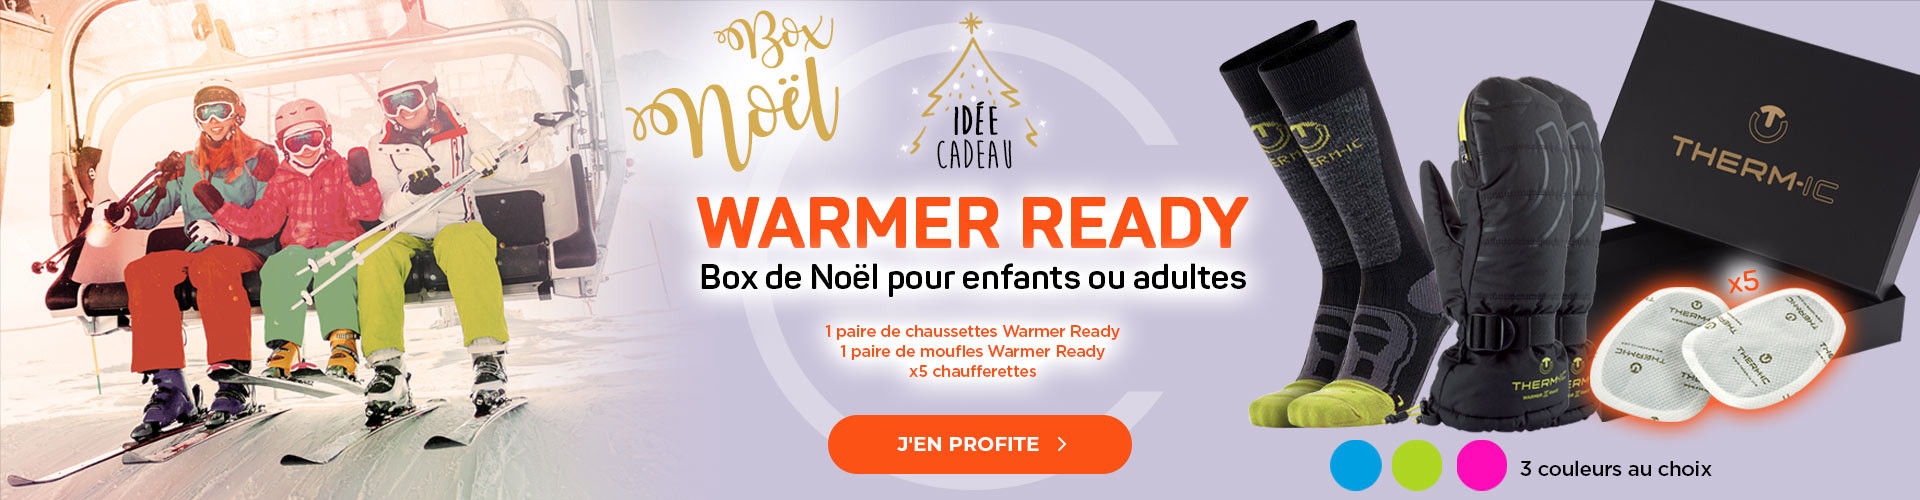 Box de Noël Warmer Ready pour enfants ou adultes